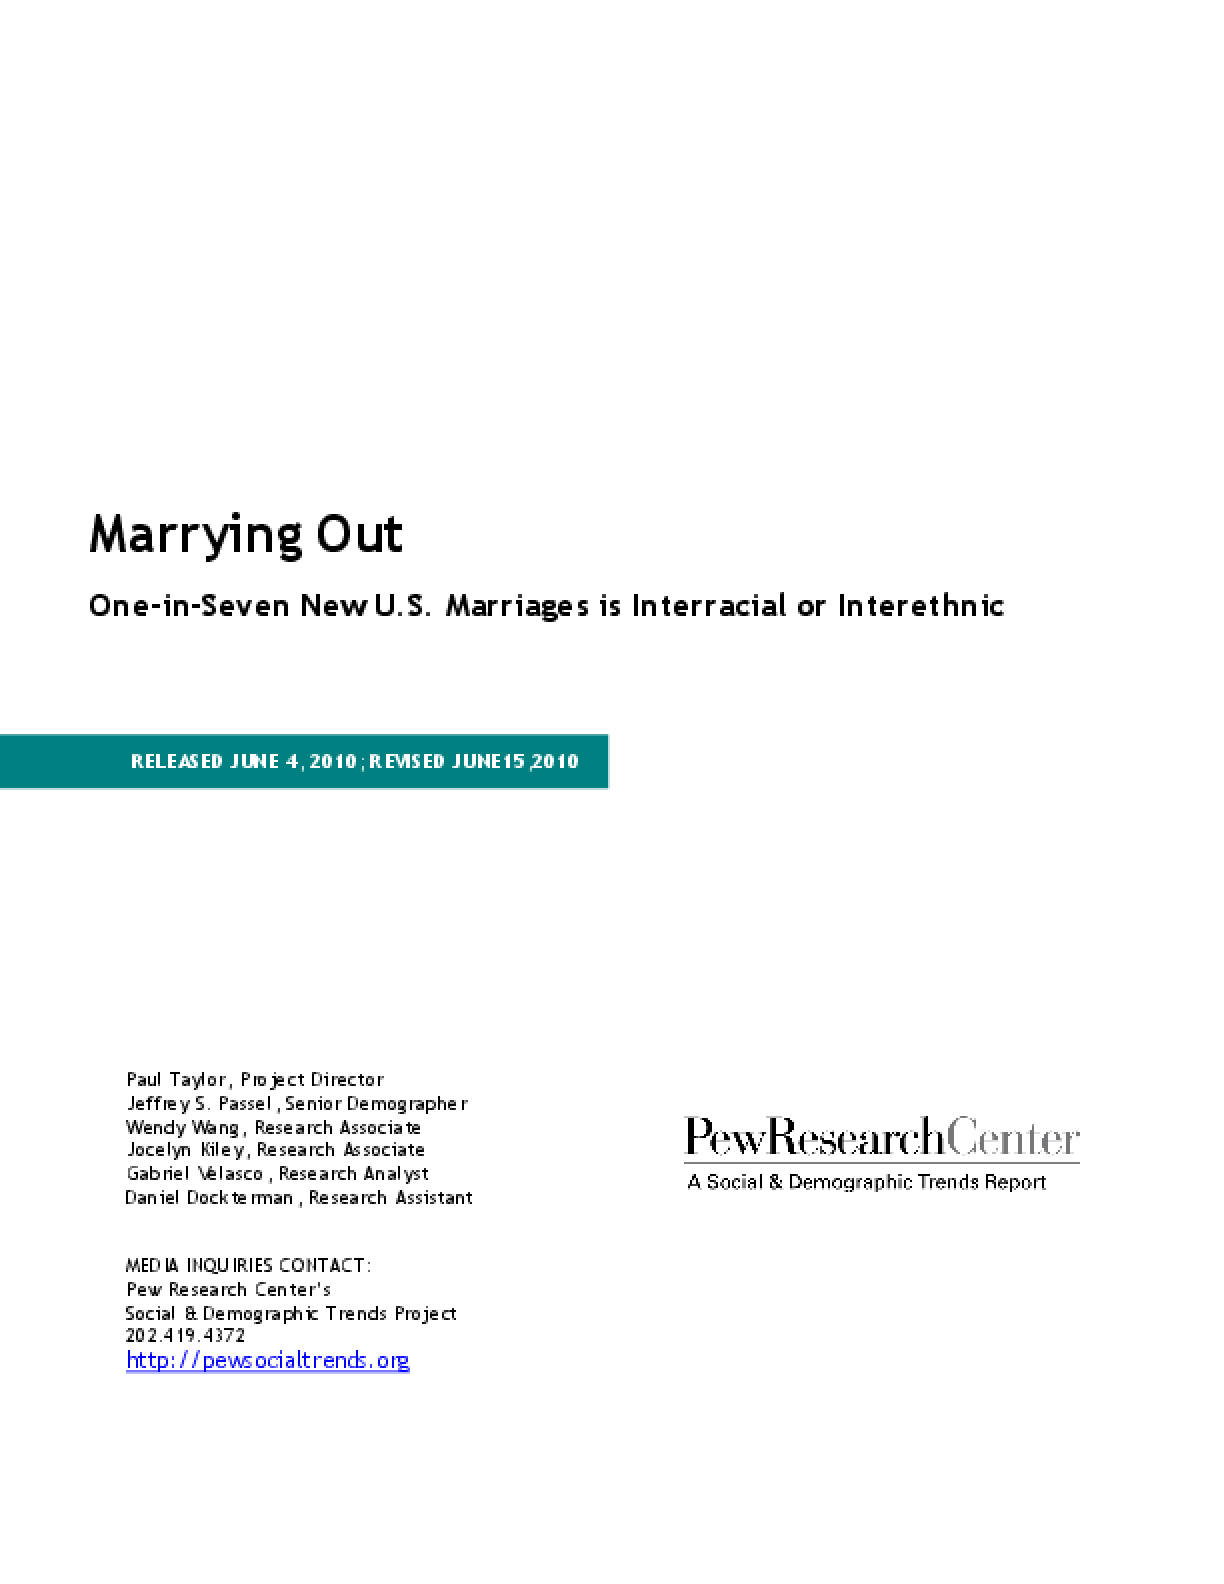 Marrying Out: One-in-Seven New U.S. Marriages Is Interracial or Interethnic